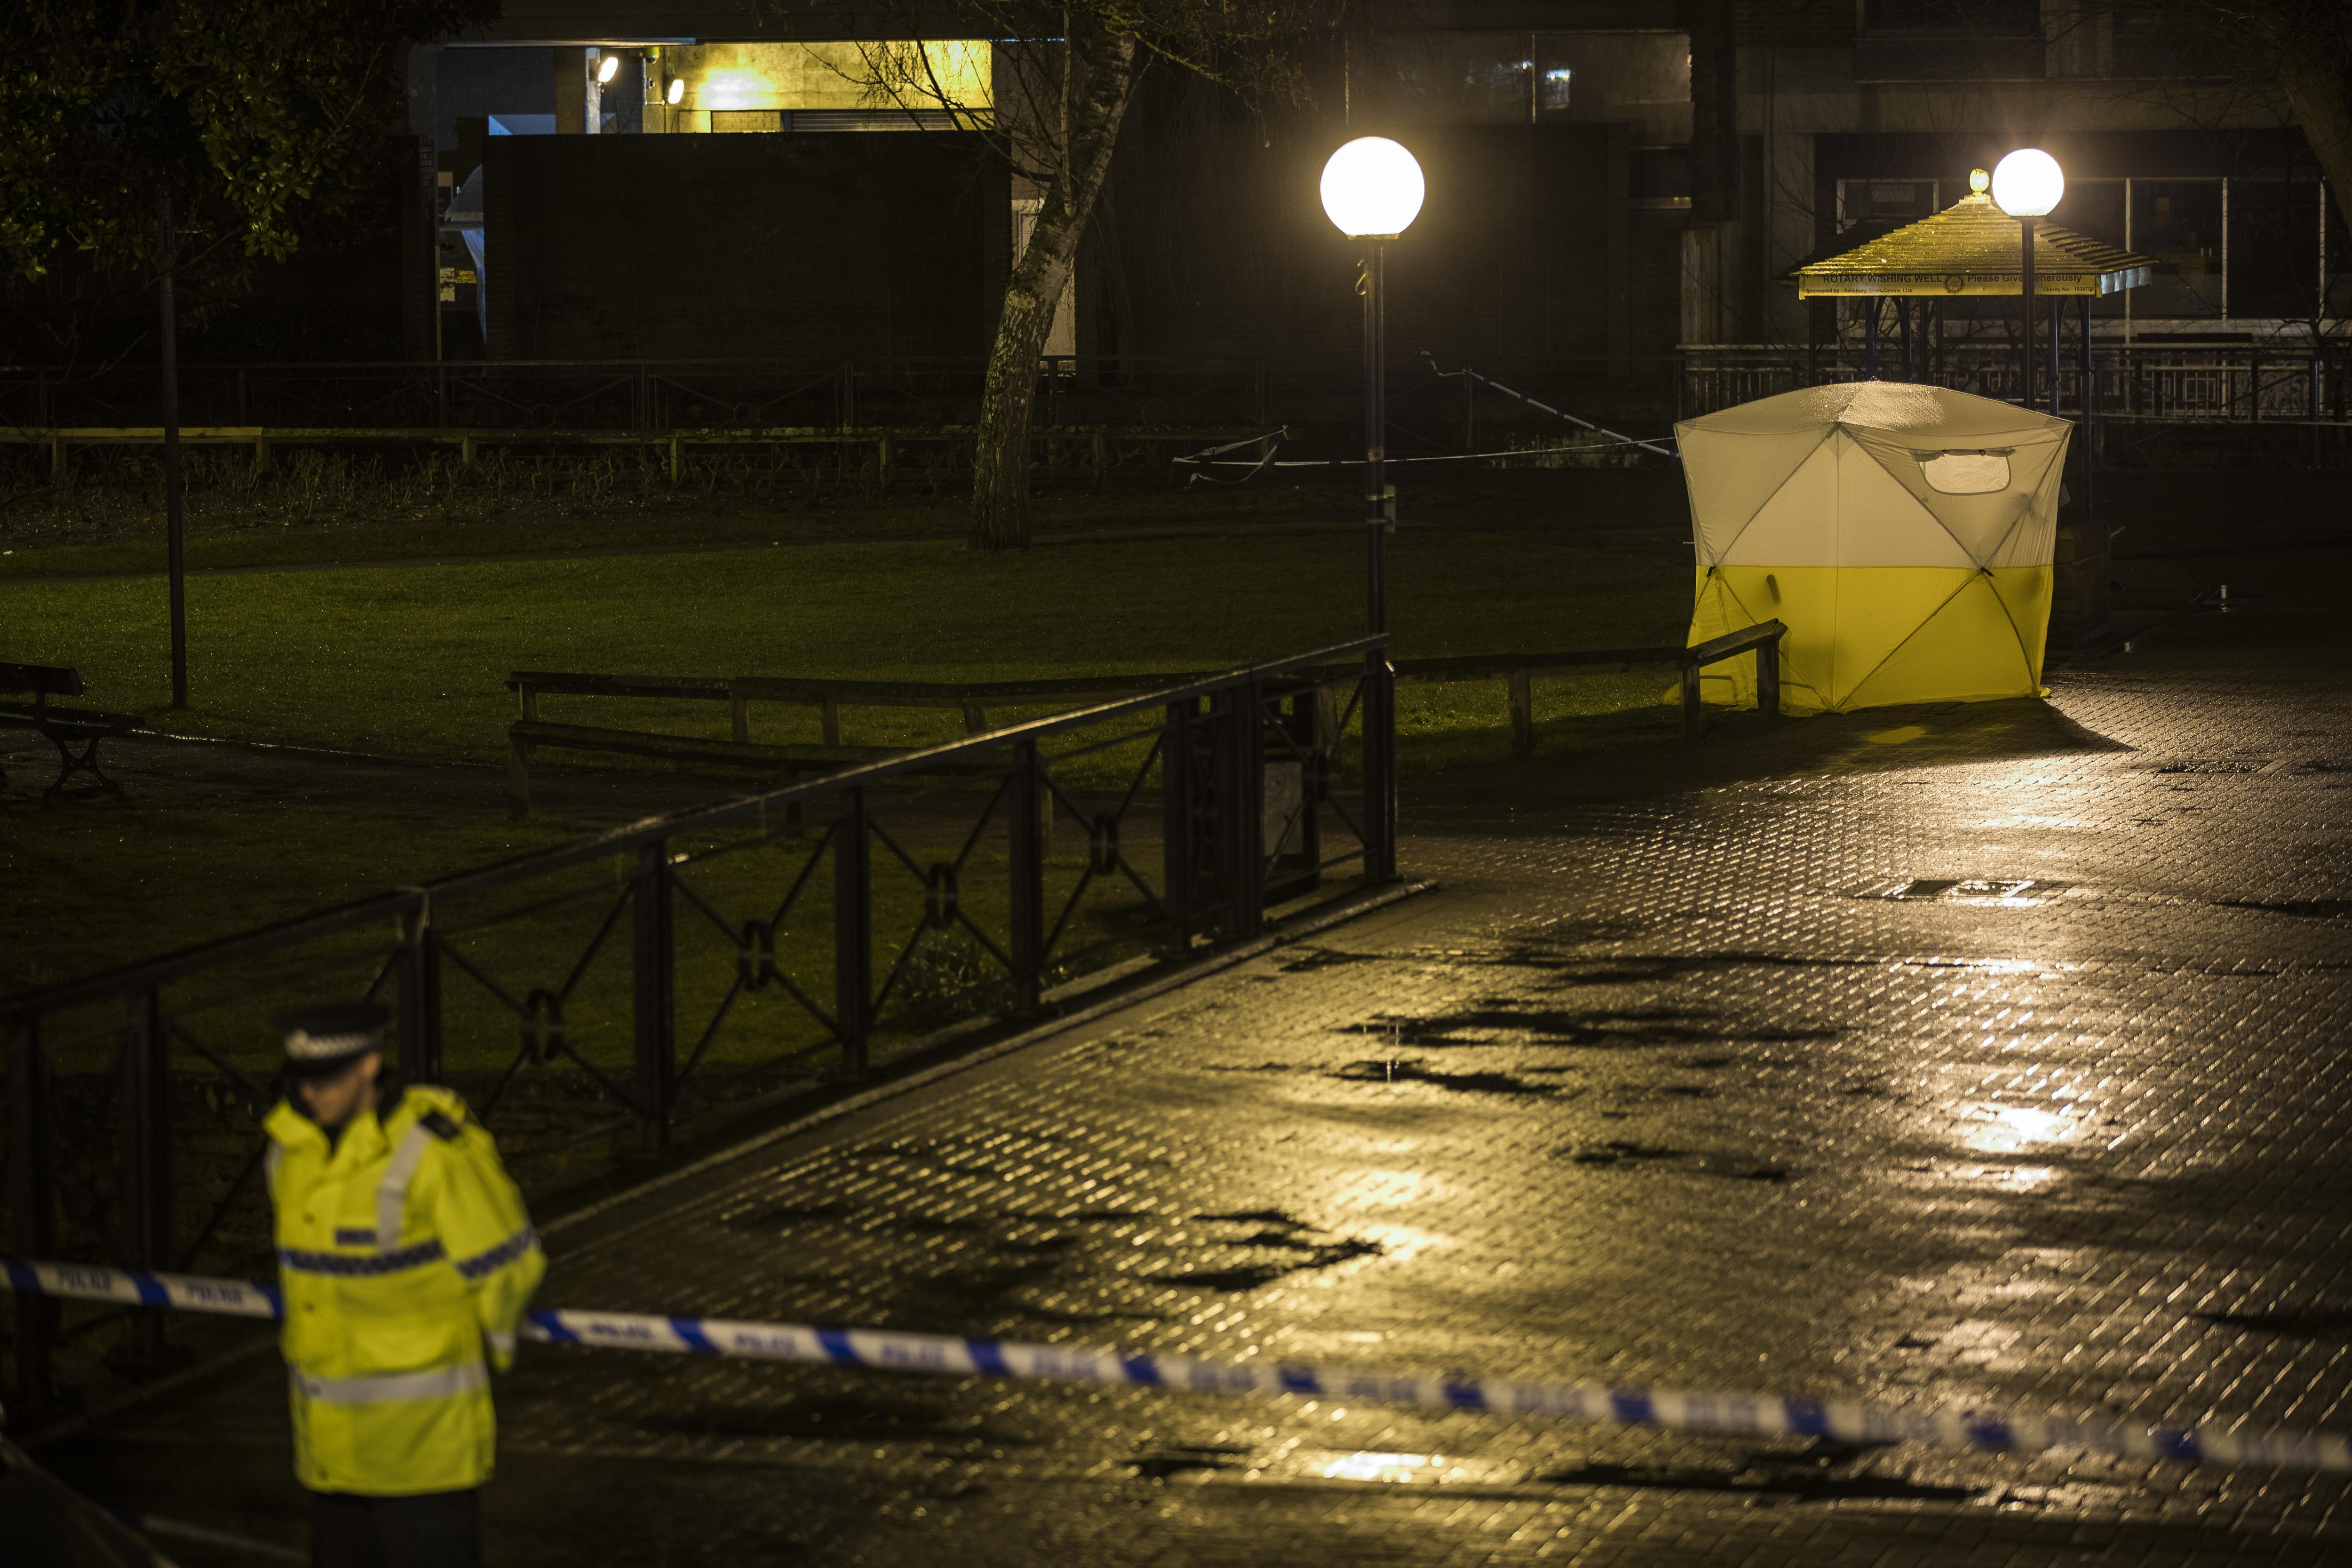 A forensic tent around a bench where Sergei Skripal was found unconscious in Salisbury, England.